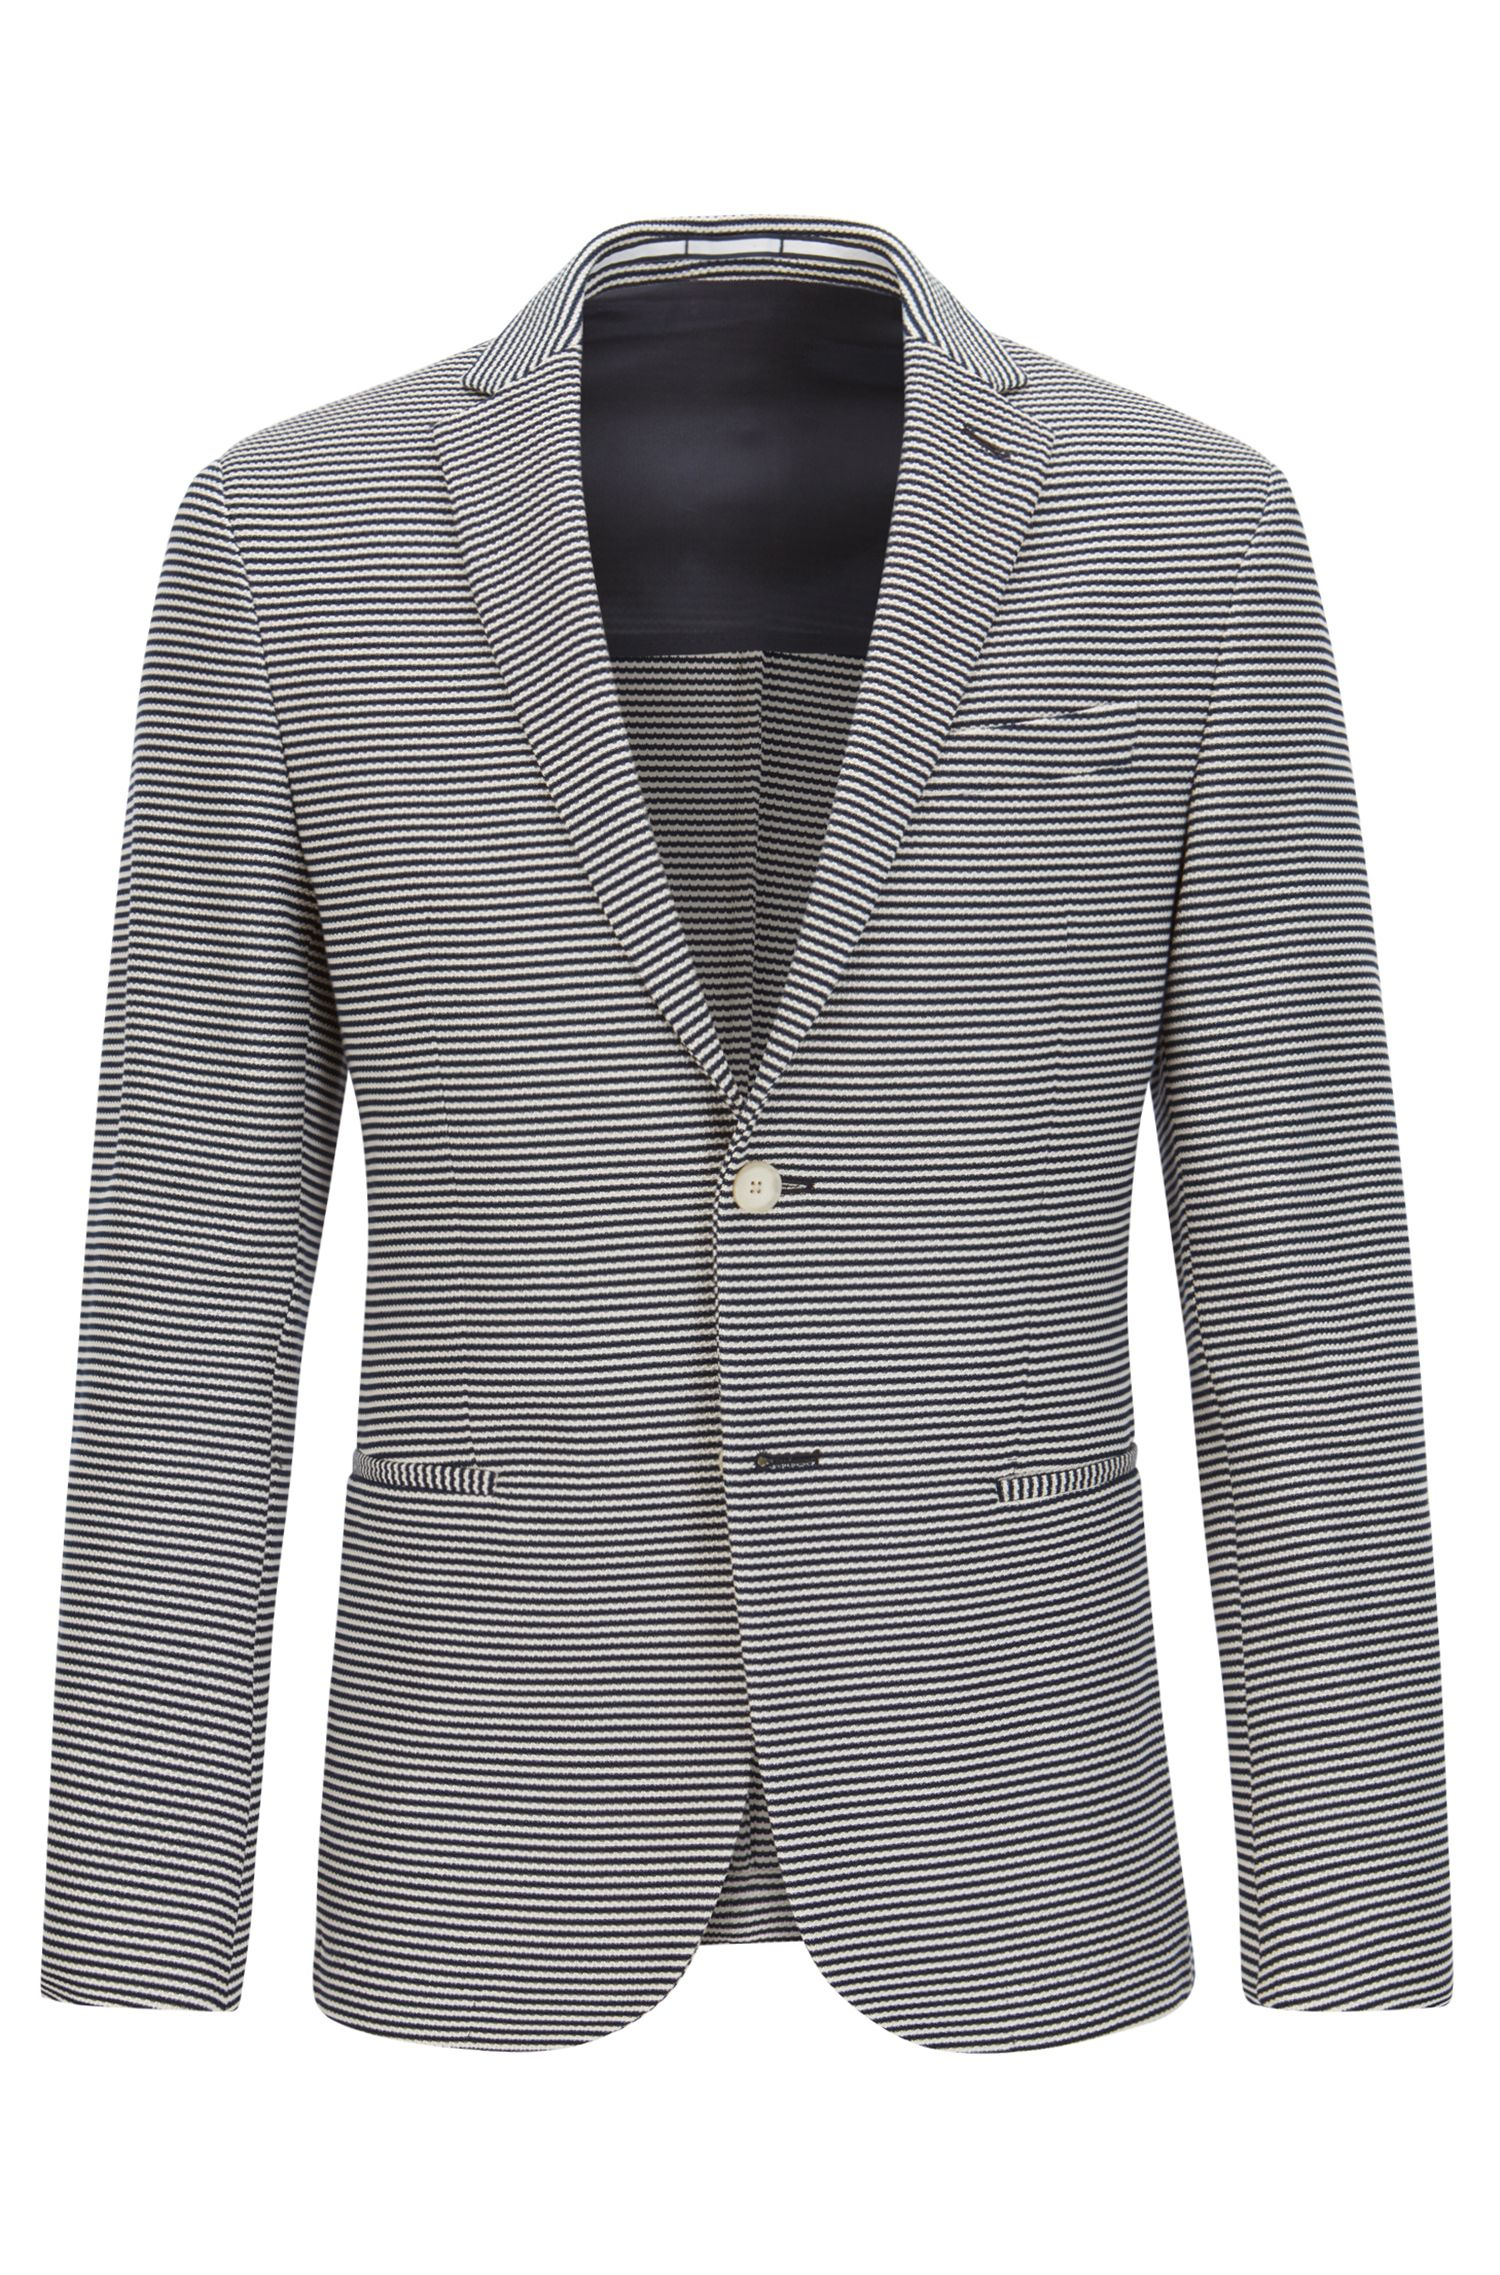 Striped Cotton Sport Coat, Slim Fit | Norwin J